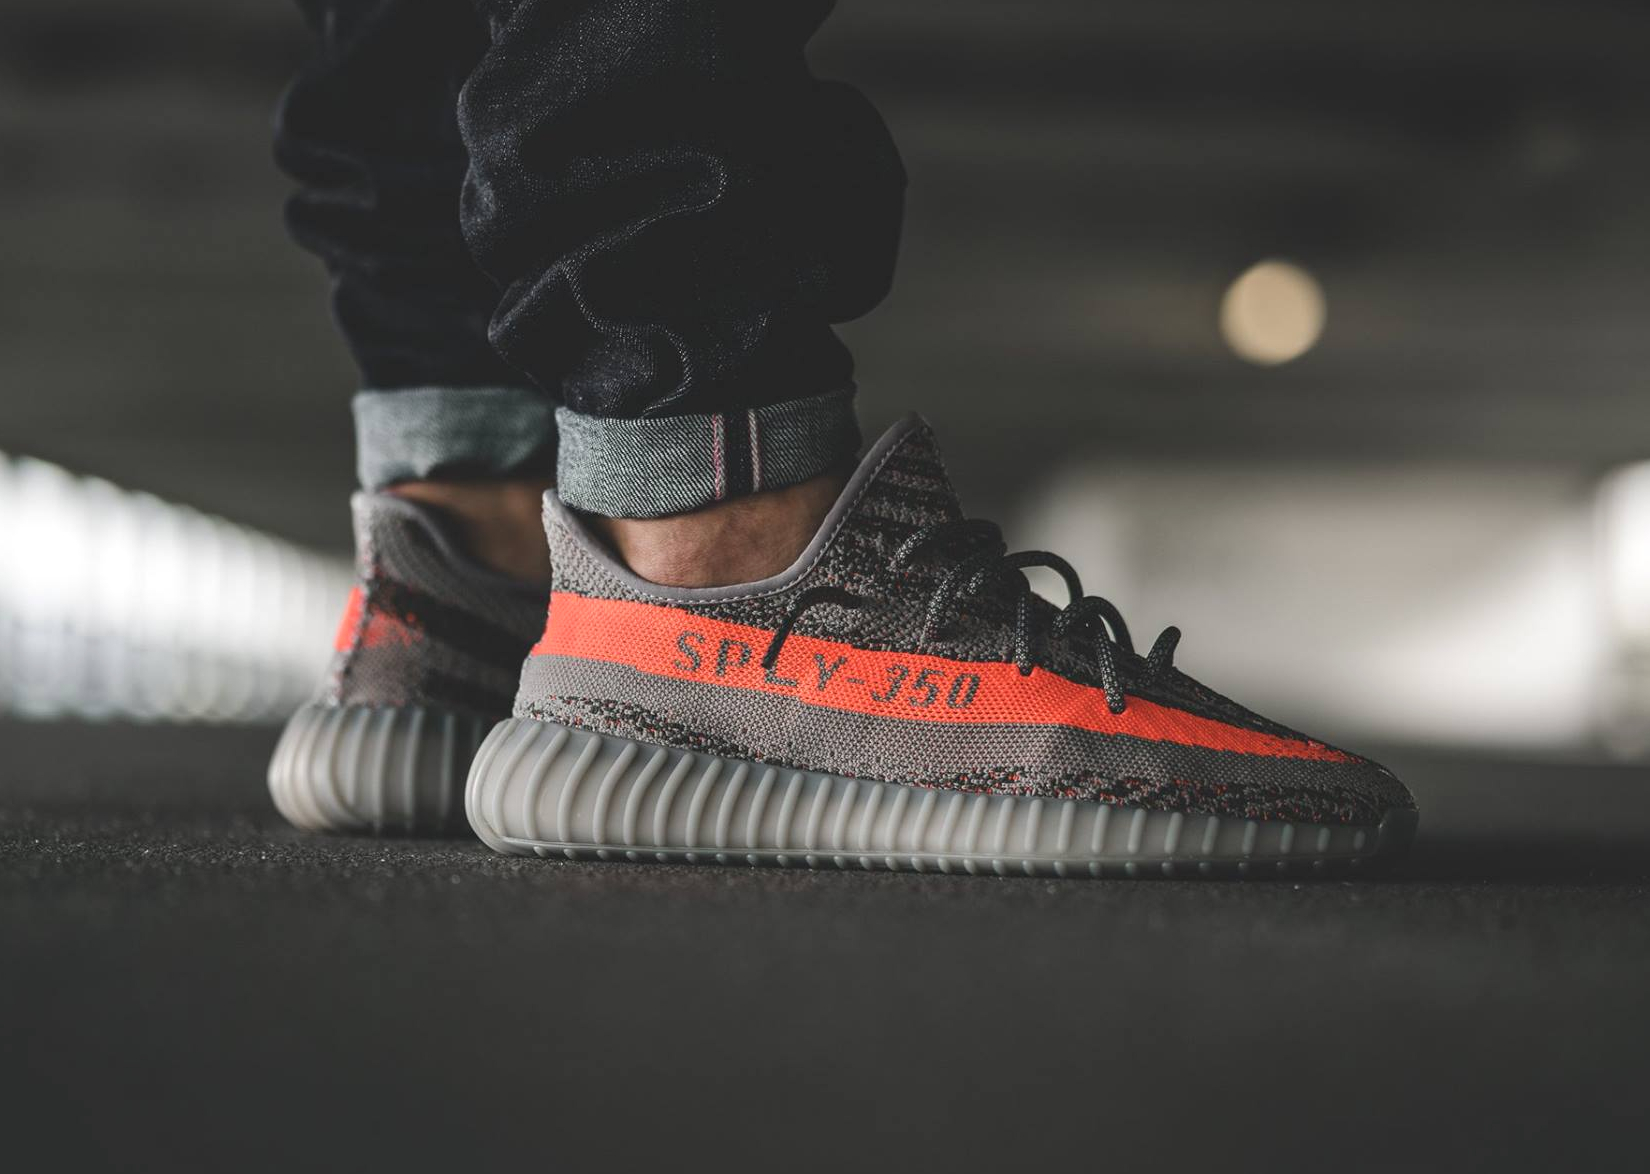 avis-basket-adidas-yeezy-350-boost-sply-steel-grey-red